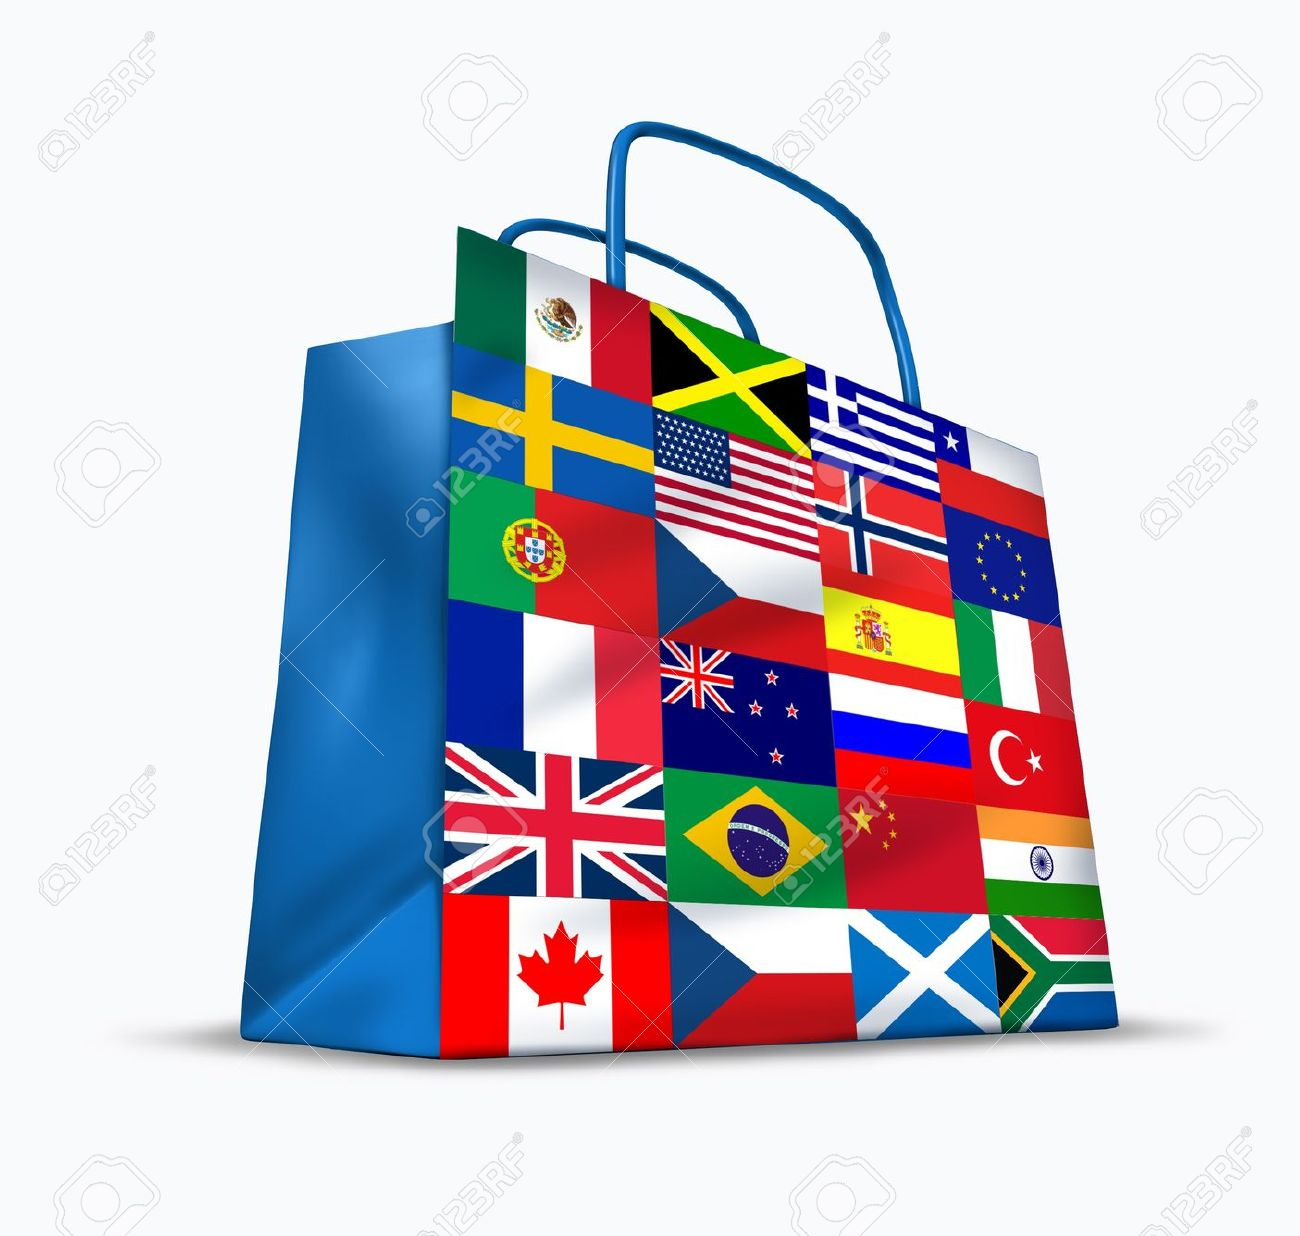 World trade and global commerce as an international symbol of business trading in exports and imports for the entire globe represented by a financial shopping bag with flags from many countries from around the earth. Stock Photo - 11840279